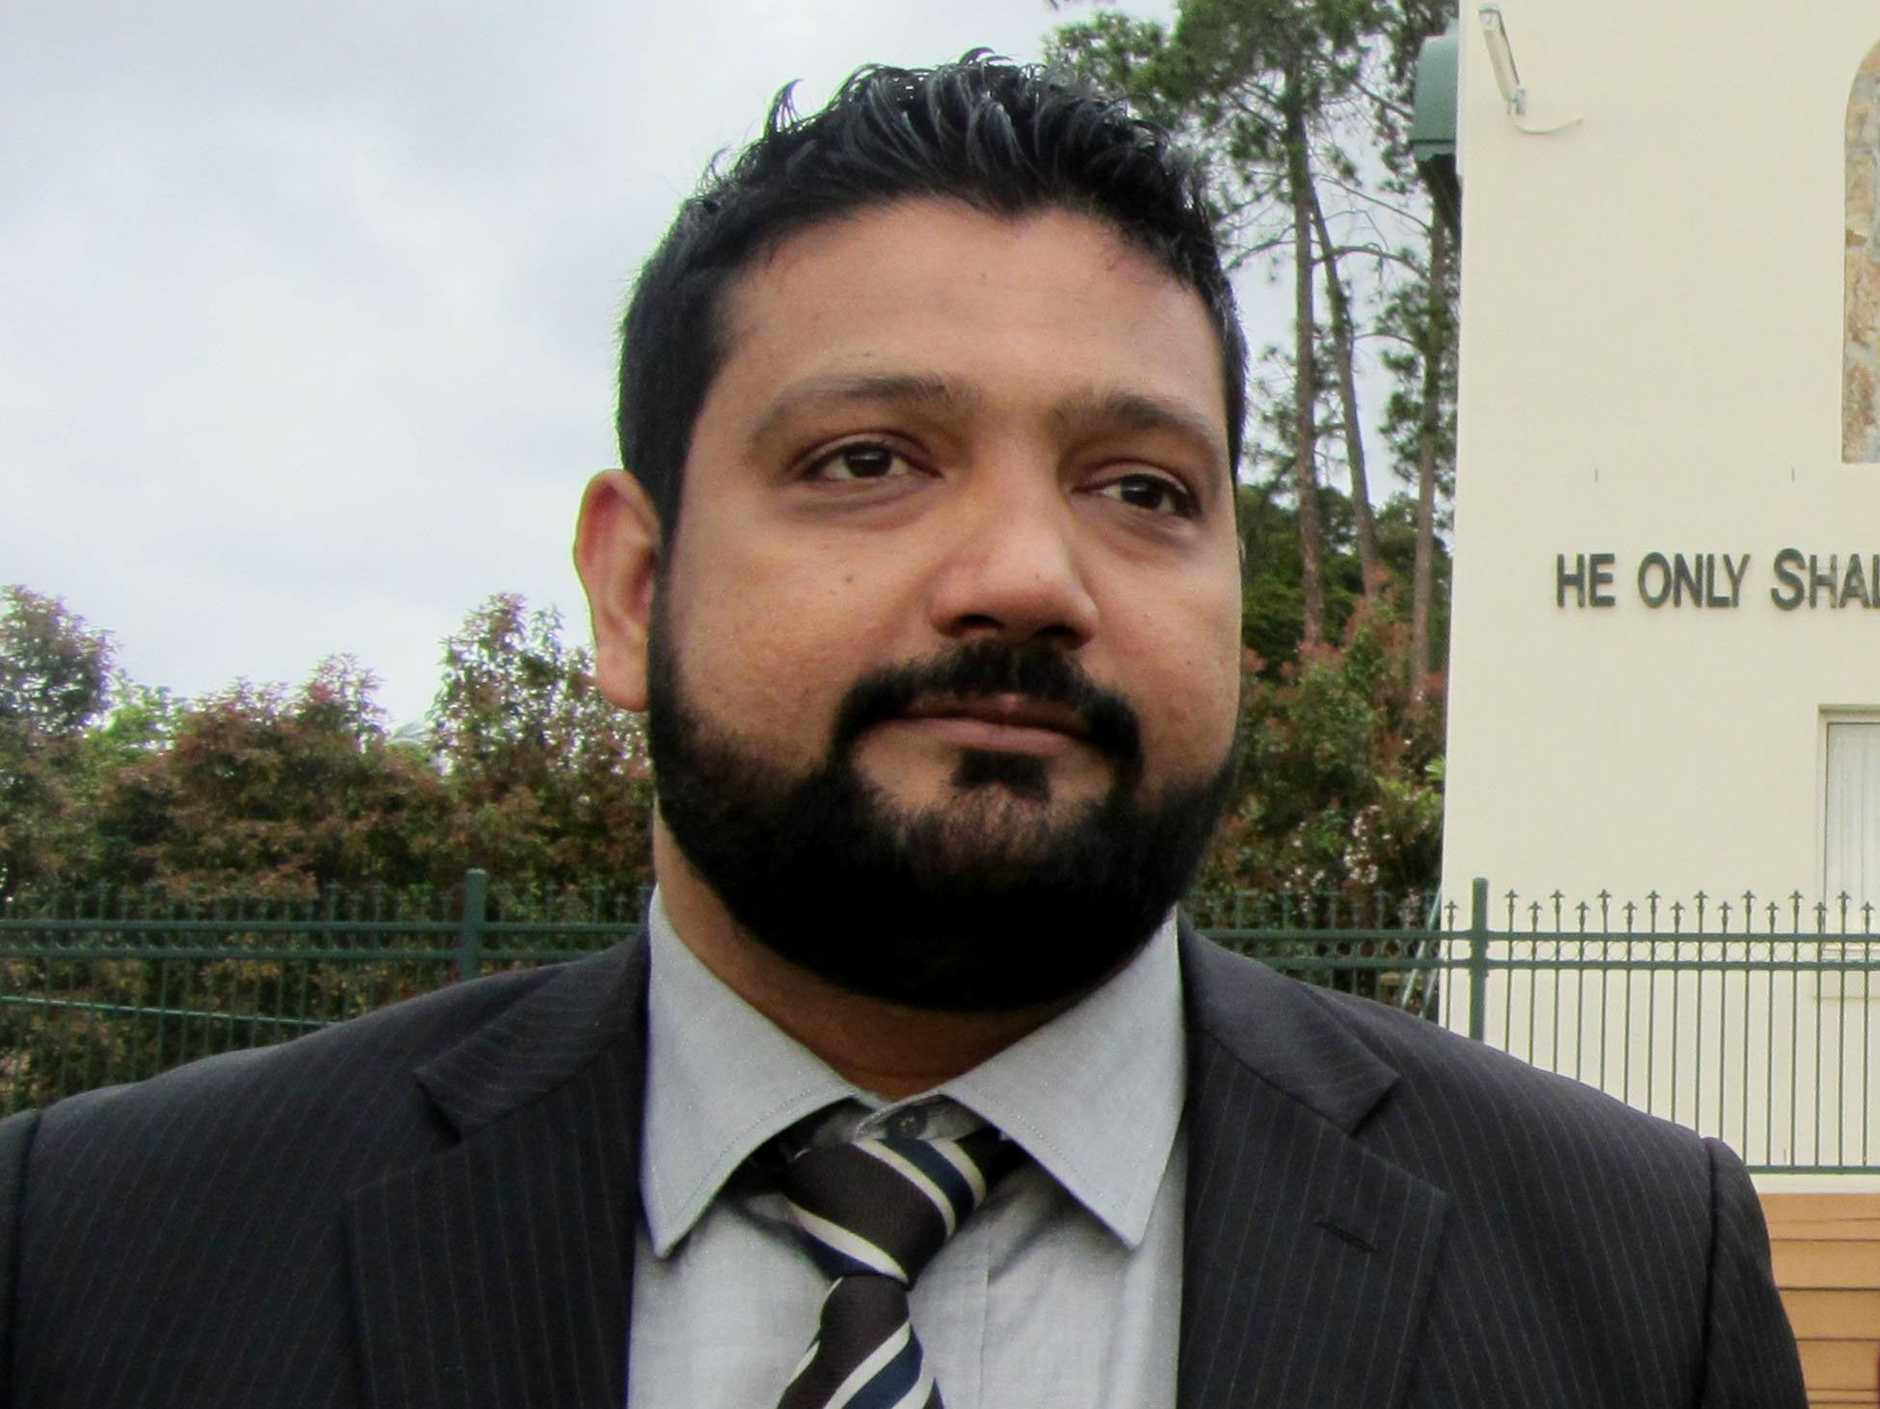 Ali Kadri, spokesman for the Islamic Society of Mackay and Islamic Council of Queensland.